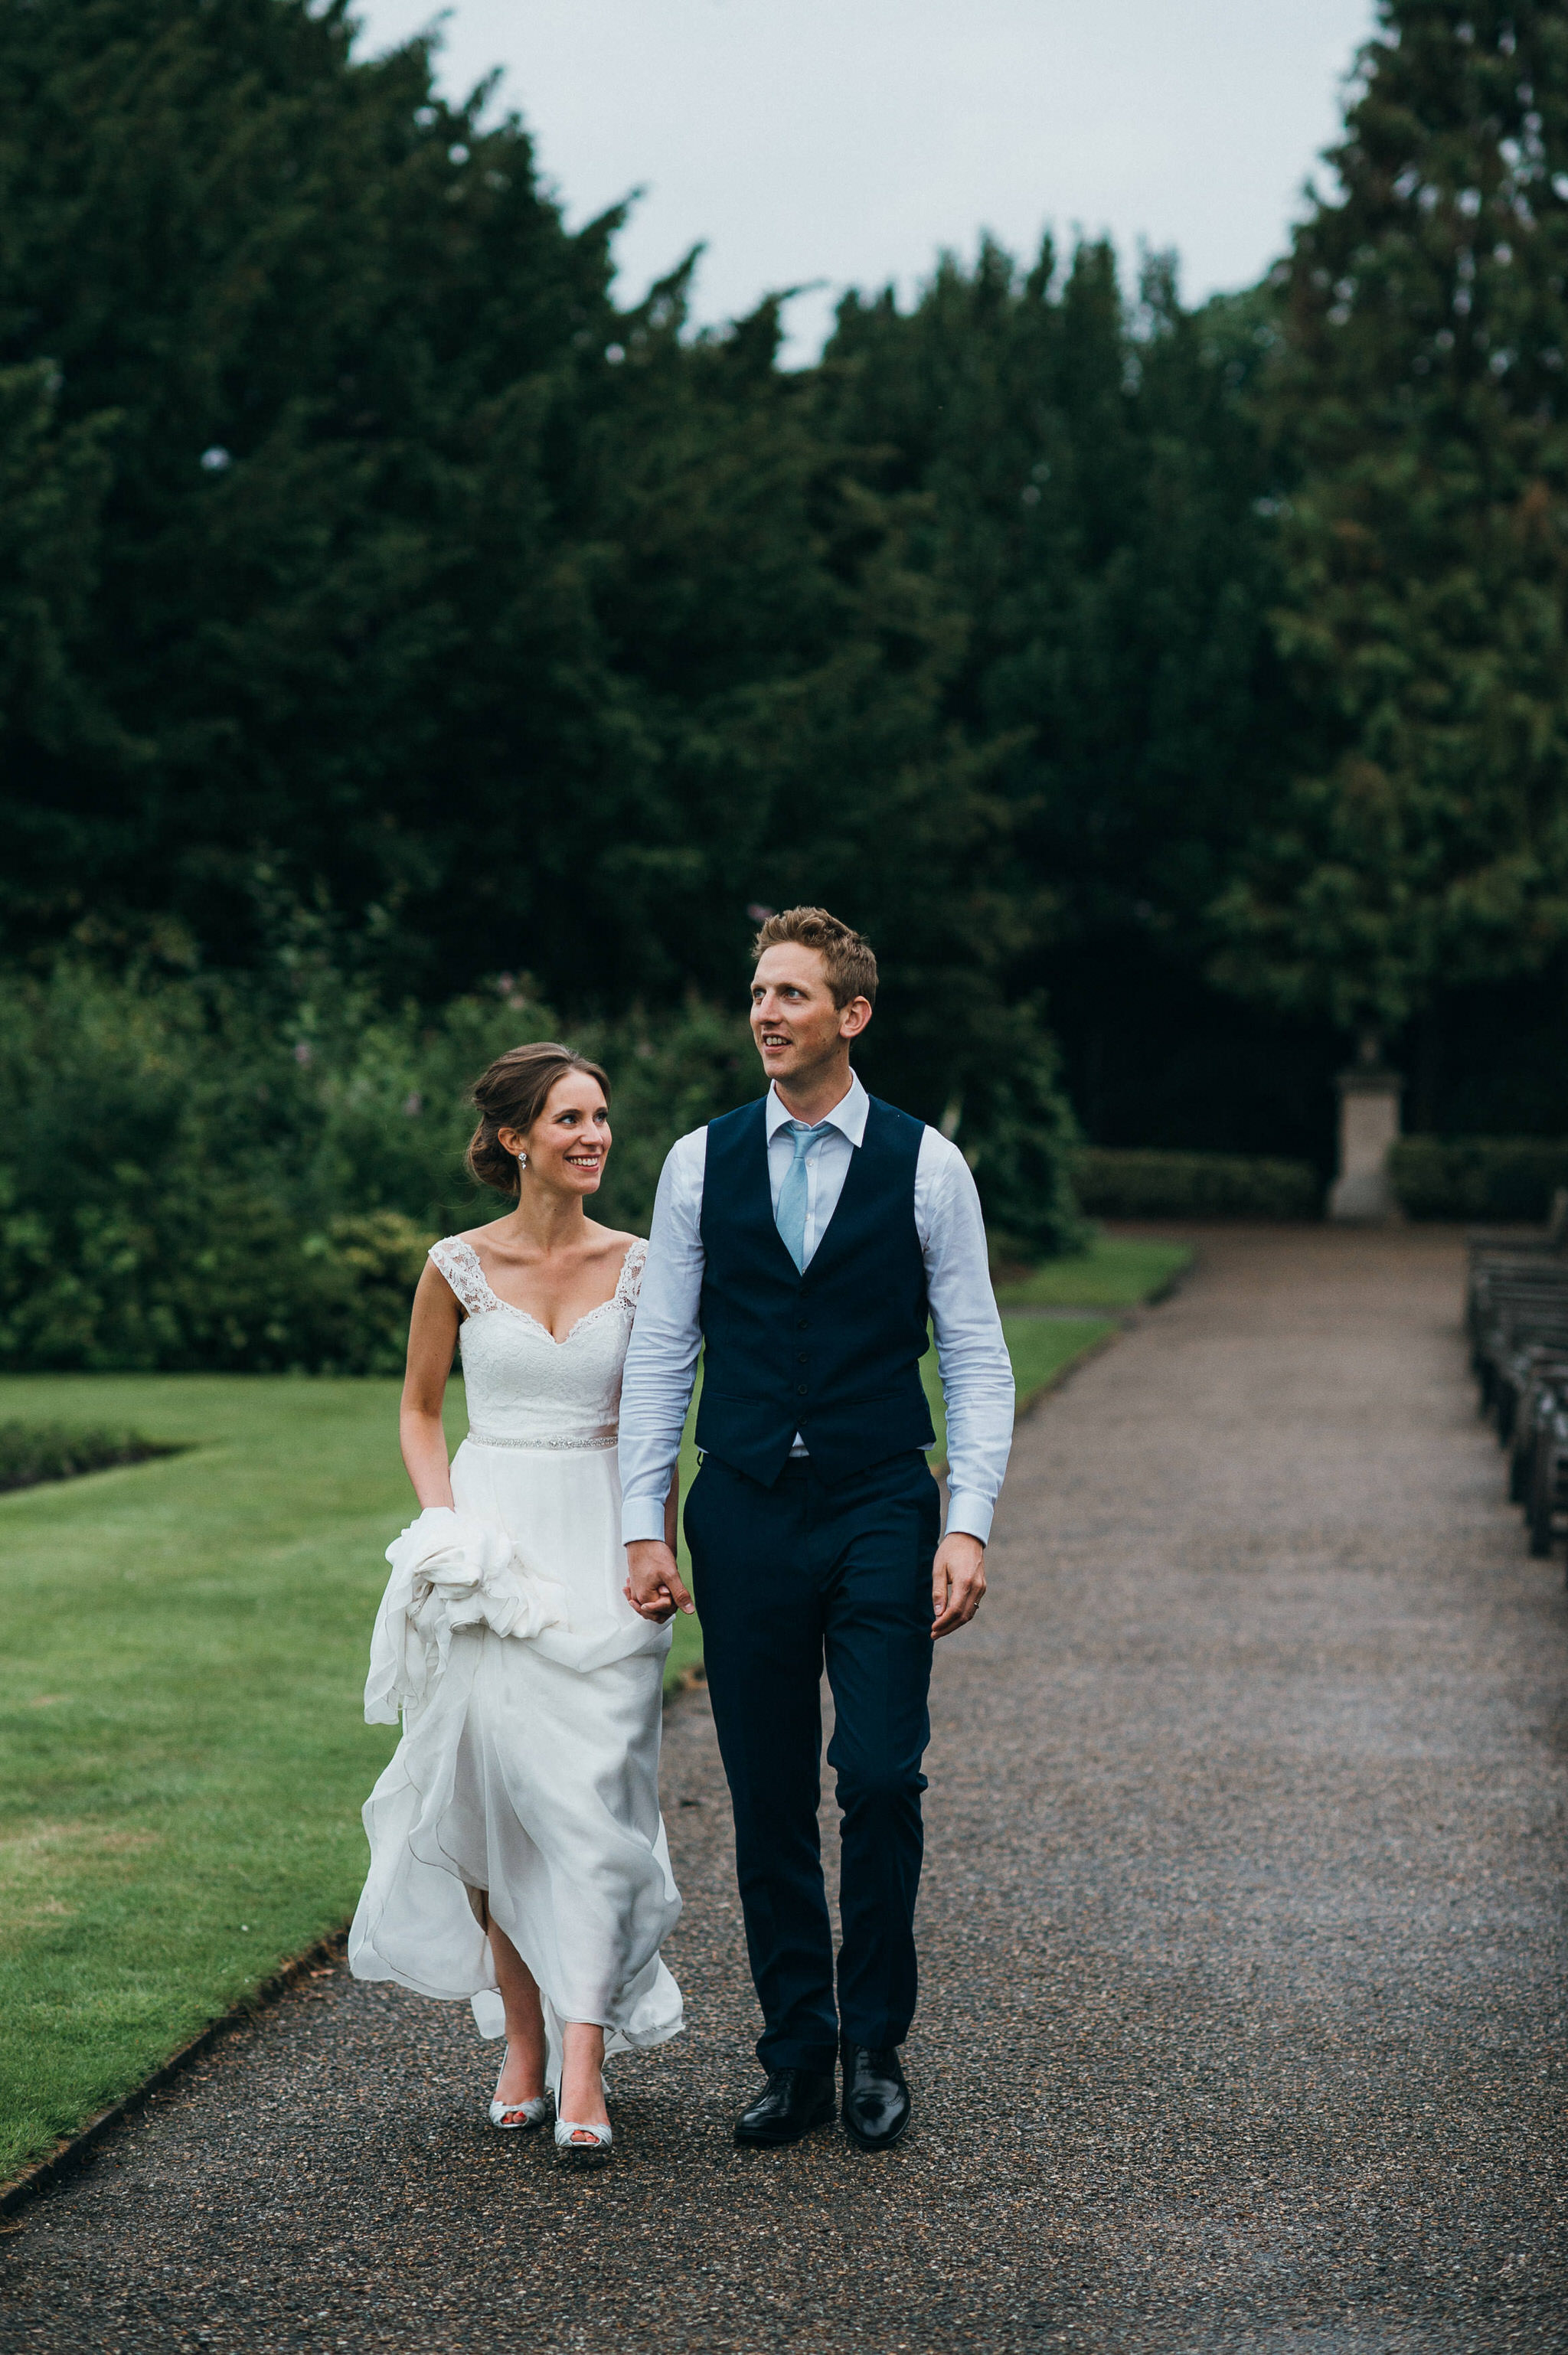 Newlyweds Nonsuch Mansion